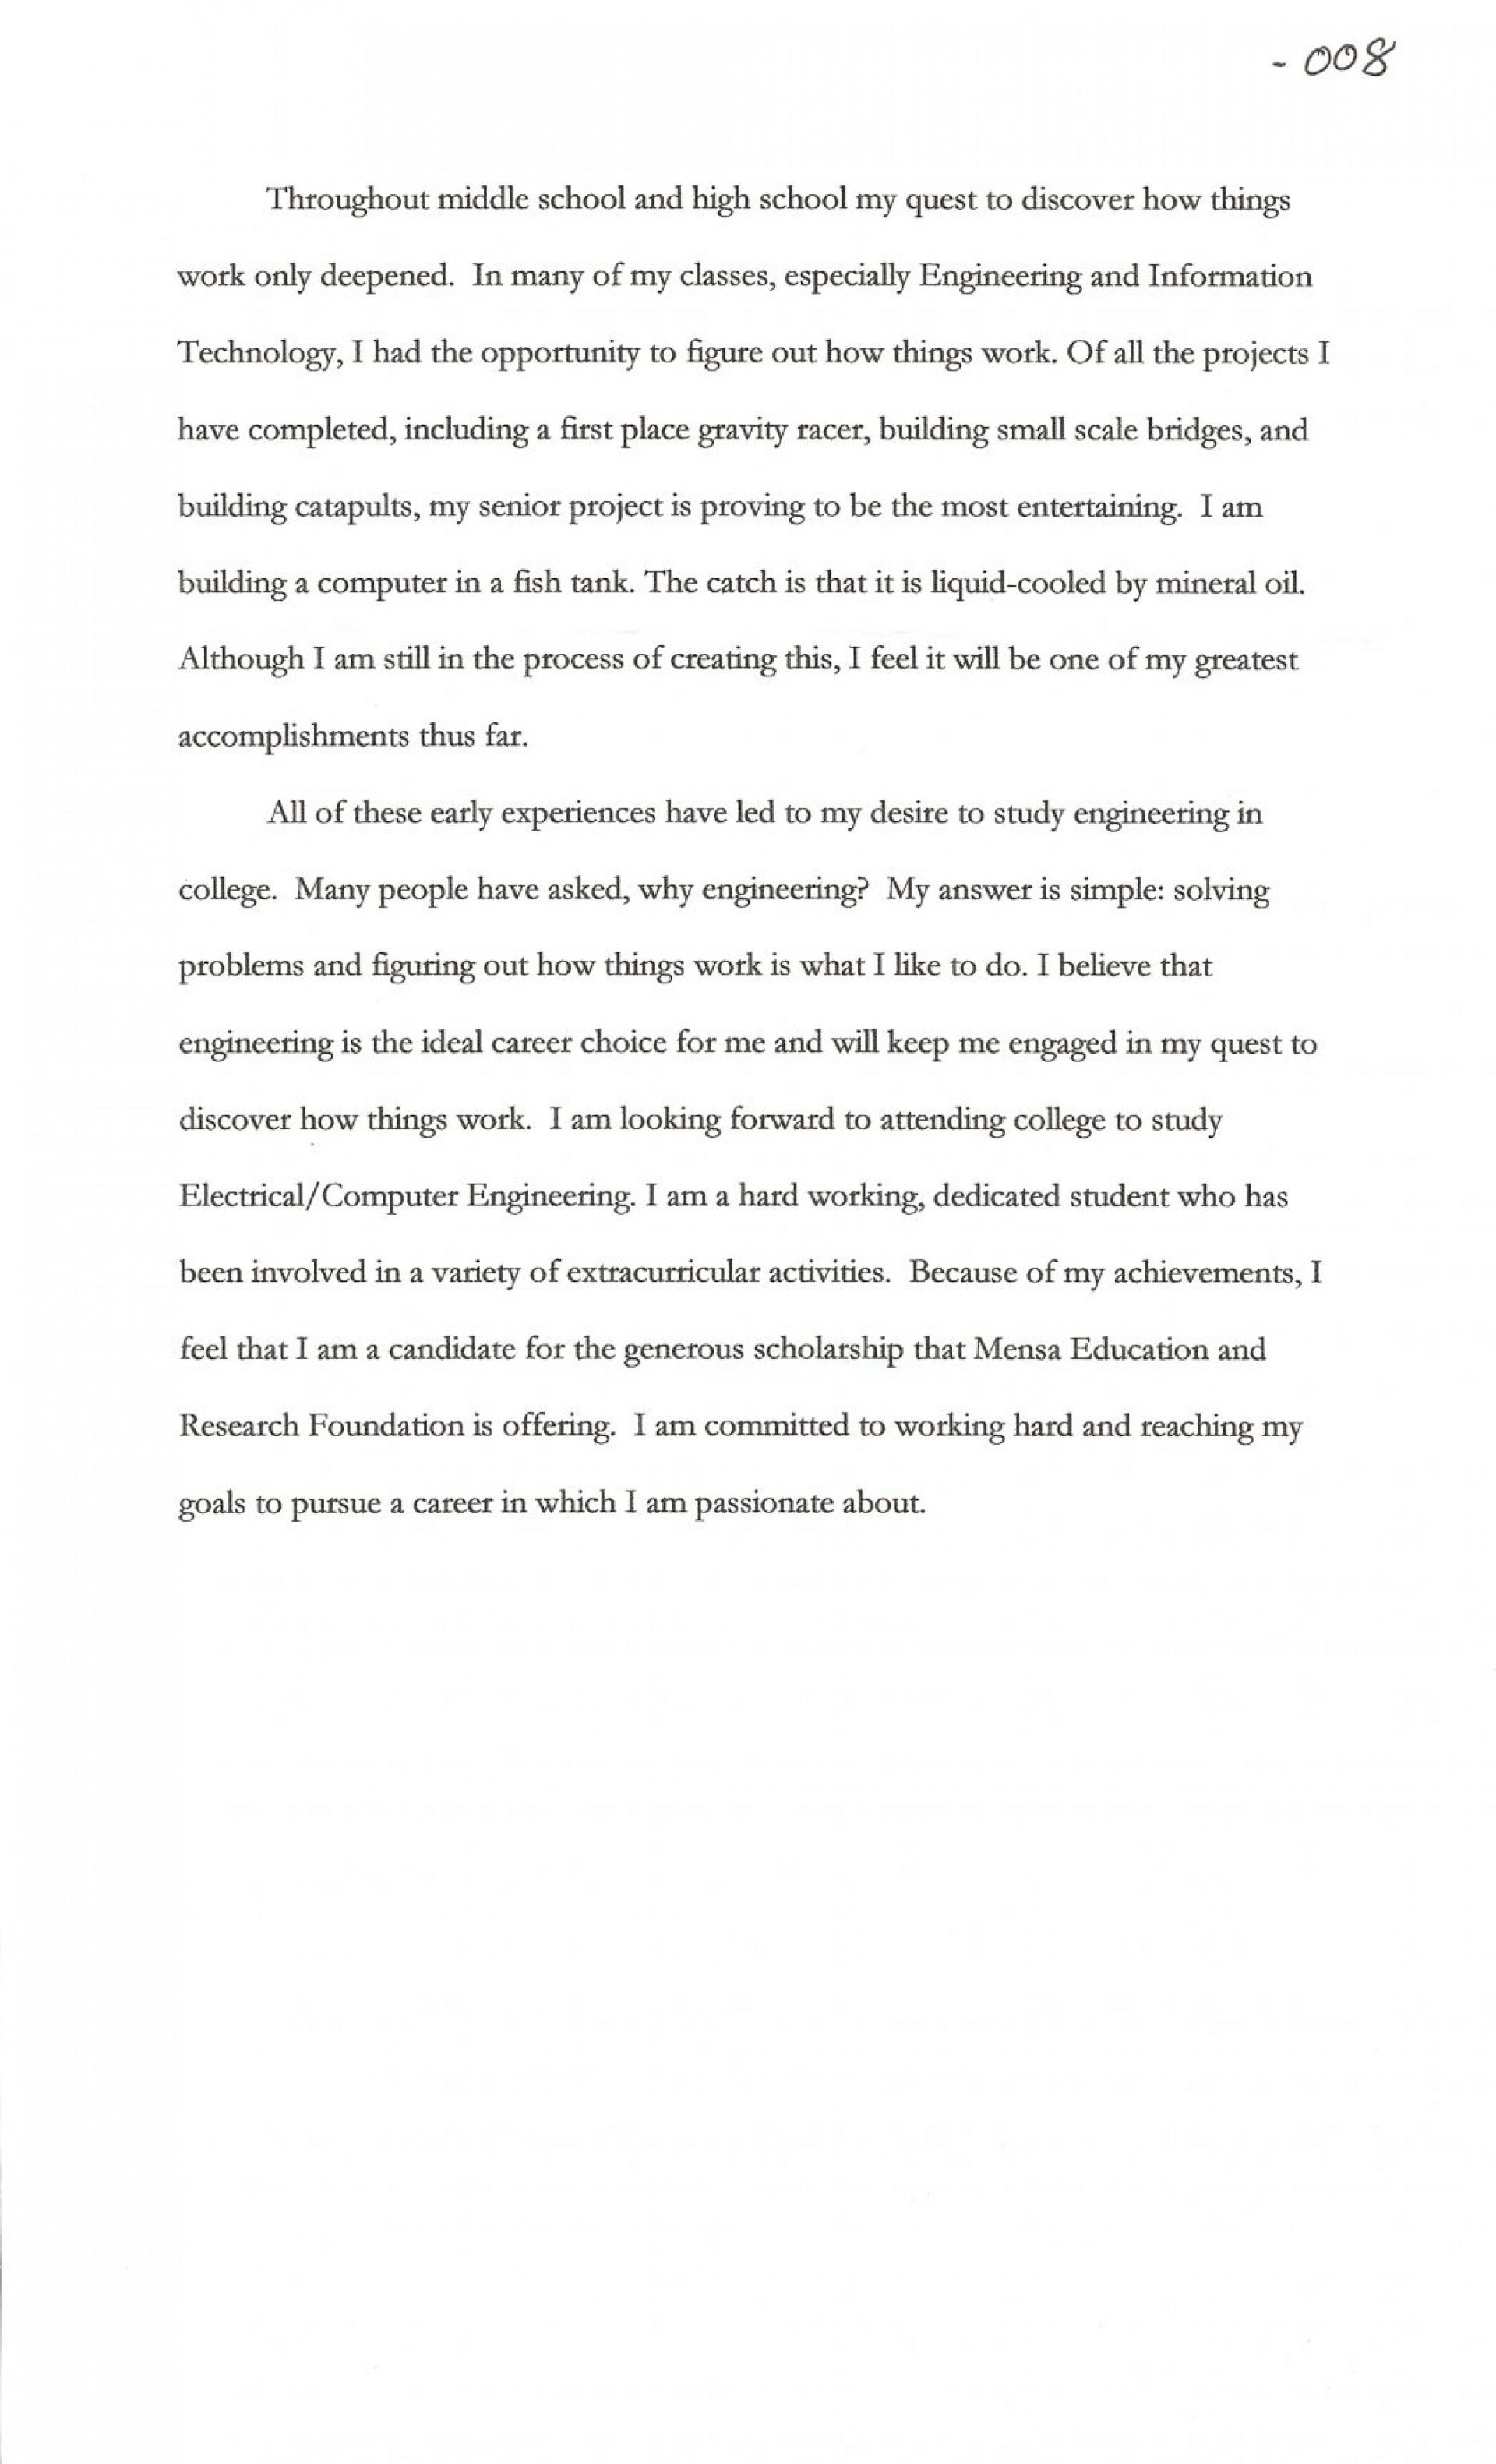 014 Sample Essay For Scholarship Scholarships Cover Letter Contests High School Juniors Joshua Cate No 1048x1726 Incredible Mara Personal Pdf 1920